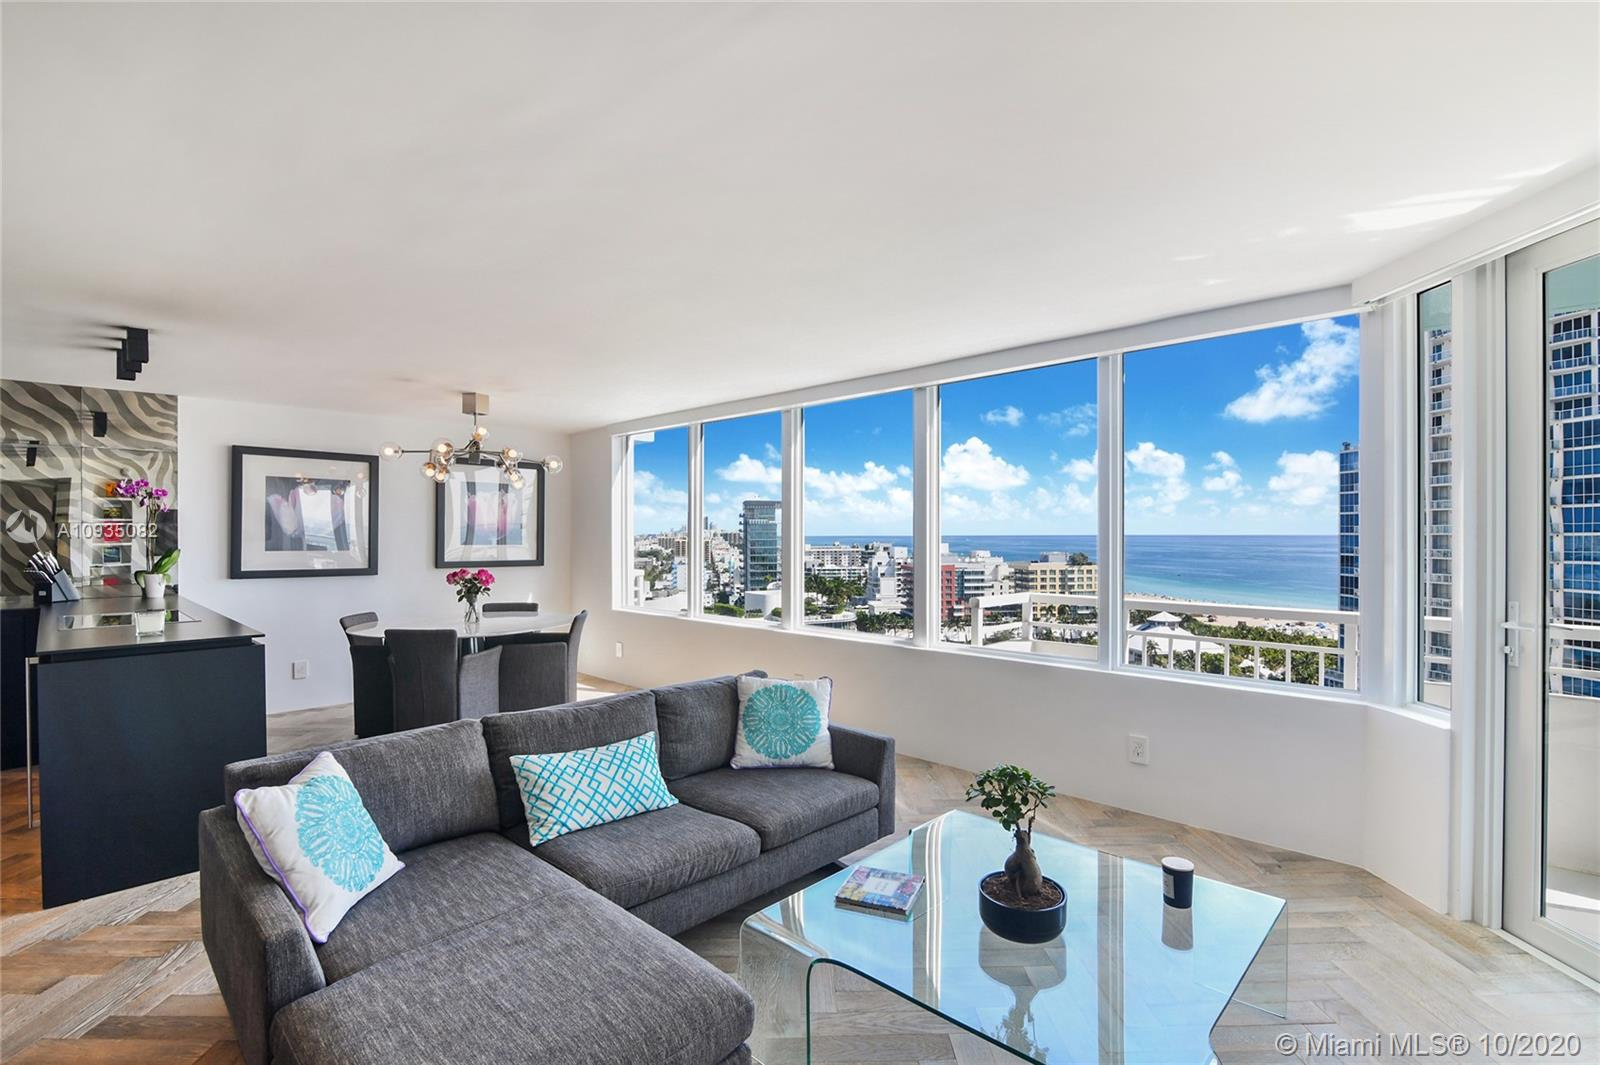 2 Beds, 2 Baths, South of Fifth, few short steps to the beach. Fully furnished turnkey designer unit. $350,000 (receipts available) spent on luxury renovations. A comparable reno w/today's Covid construction restrictions (i e # of workers in the unit at a time, etc) would take at least 12 months (not 4).This unit is ready for immediate occupancy.1 covered parking located very close to elevators. Hurricane impact glass, Boffi kitchen, Gaggenau appliances, Boffi bathrooms, Herringbone Siberian wood floors, Kreon lighting system, Electric shades, redesigned open floor plan with panoramic views. Full service luxury building w/2 brand new pools, gym, enclosed dog park, tennis courts, garden area & more. 1 storage locker. All assessments paid.